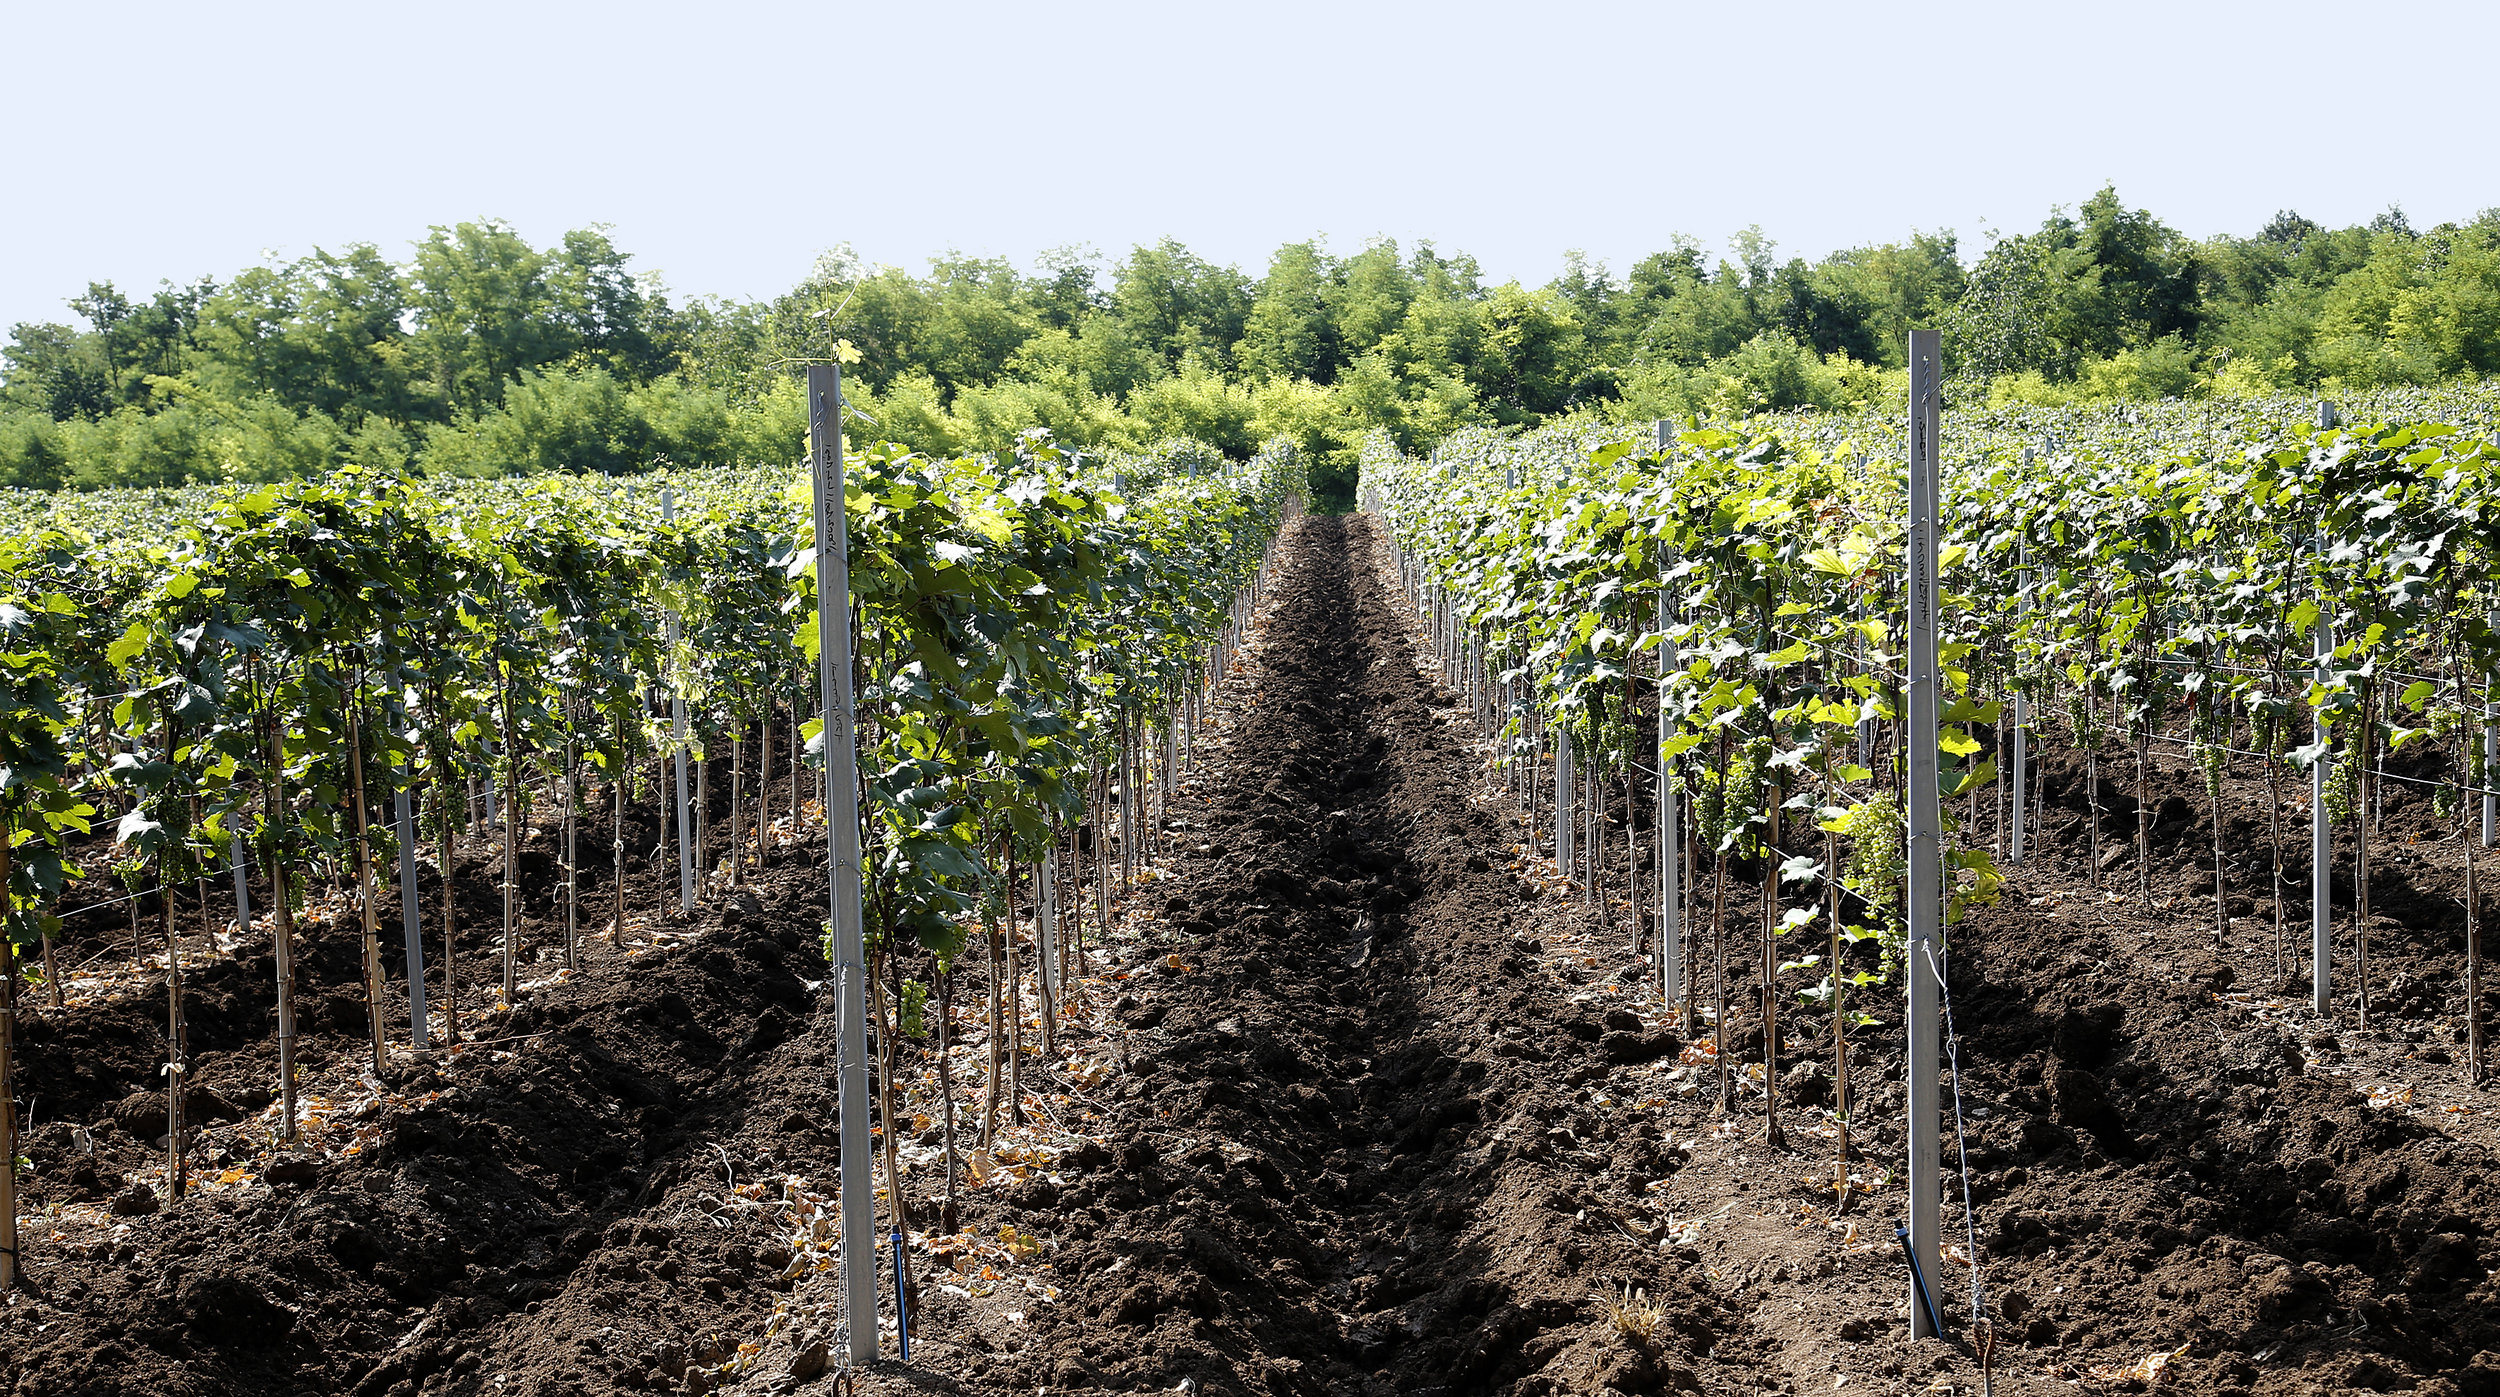 Rows of vines to make organic and natural red, white, amber and orange wines